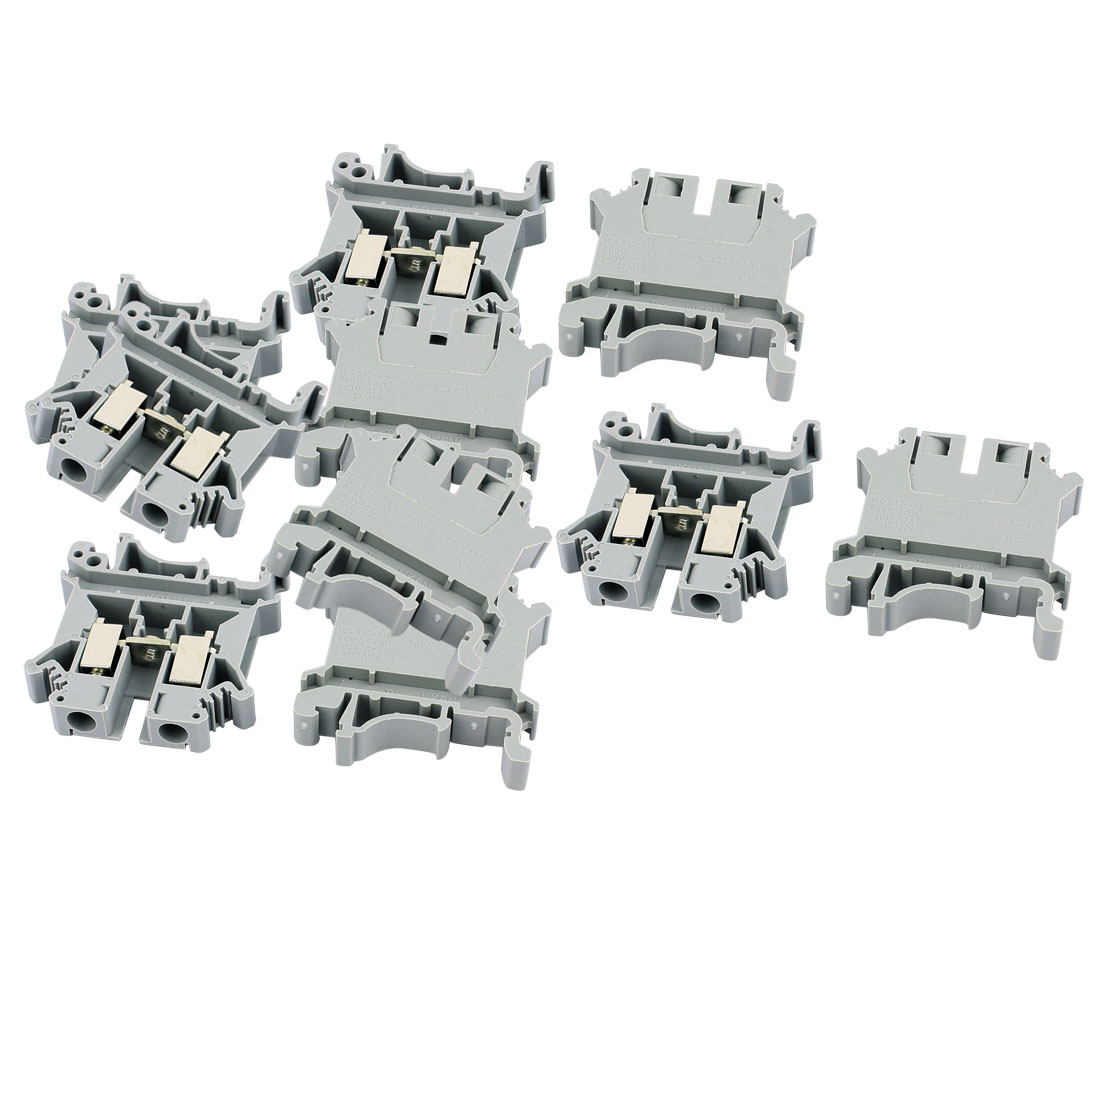 10 Pcs UK-6N 800V 57A 6mm2 28-12AWG DIN Rail Screw Clipping Terminal Block Connector